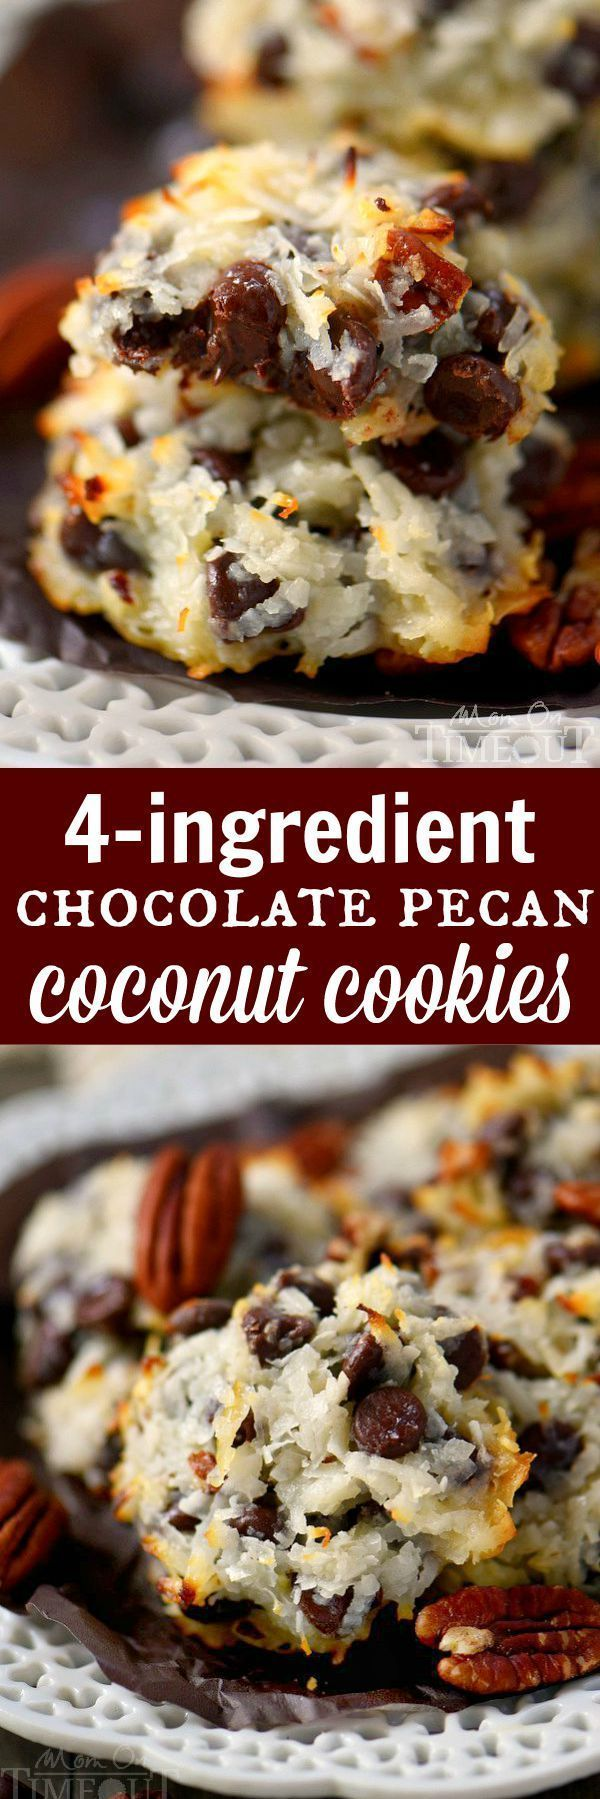 These delicious Chocolate Pecan Coconut Cookies take only 4 ingredients! Ooey…